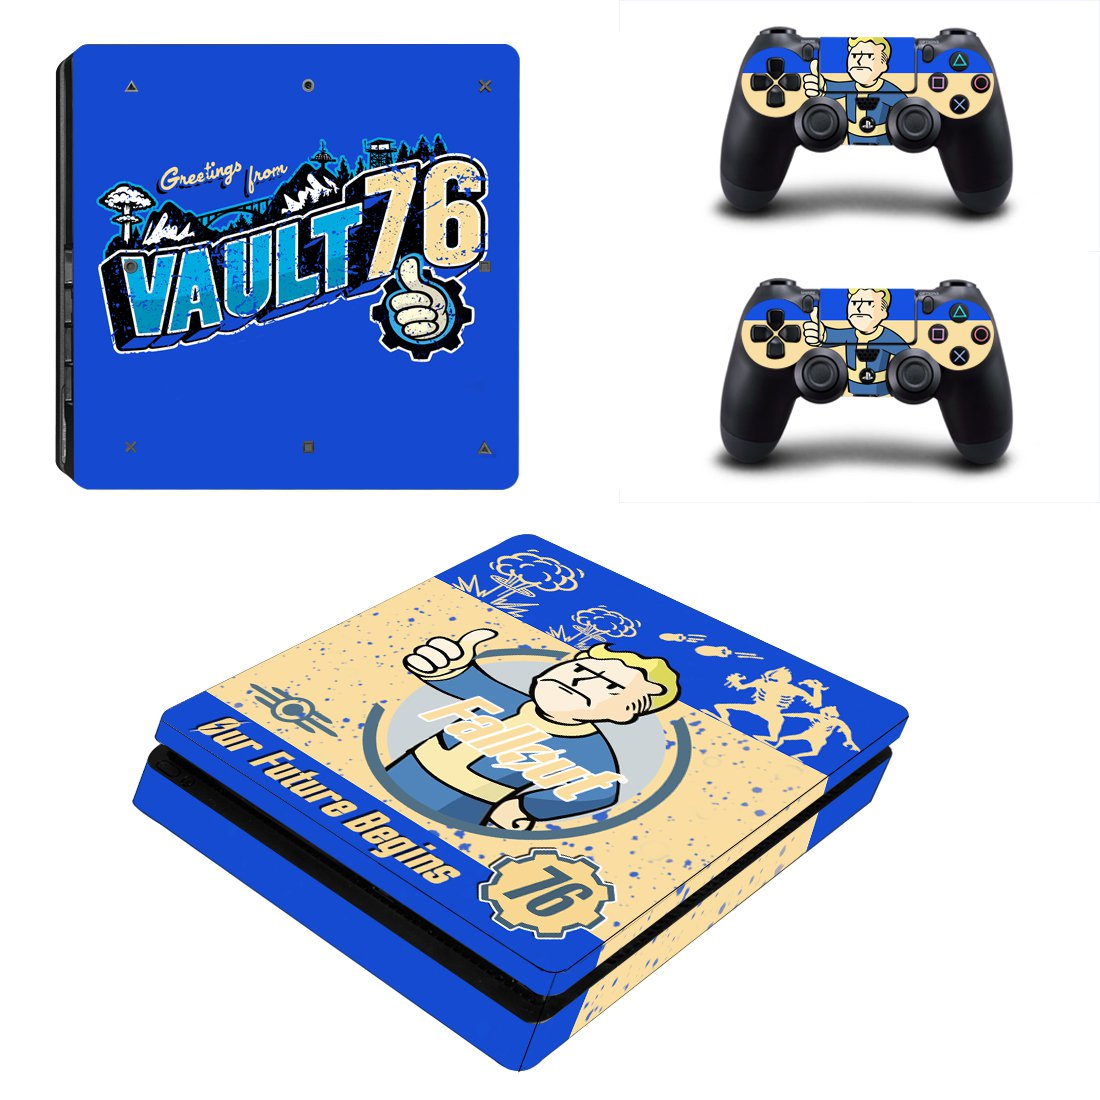 Fallout 76 PS4 Slim Skin Sticker Decals PS4 Console And Controllers Protect Your PS4